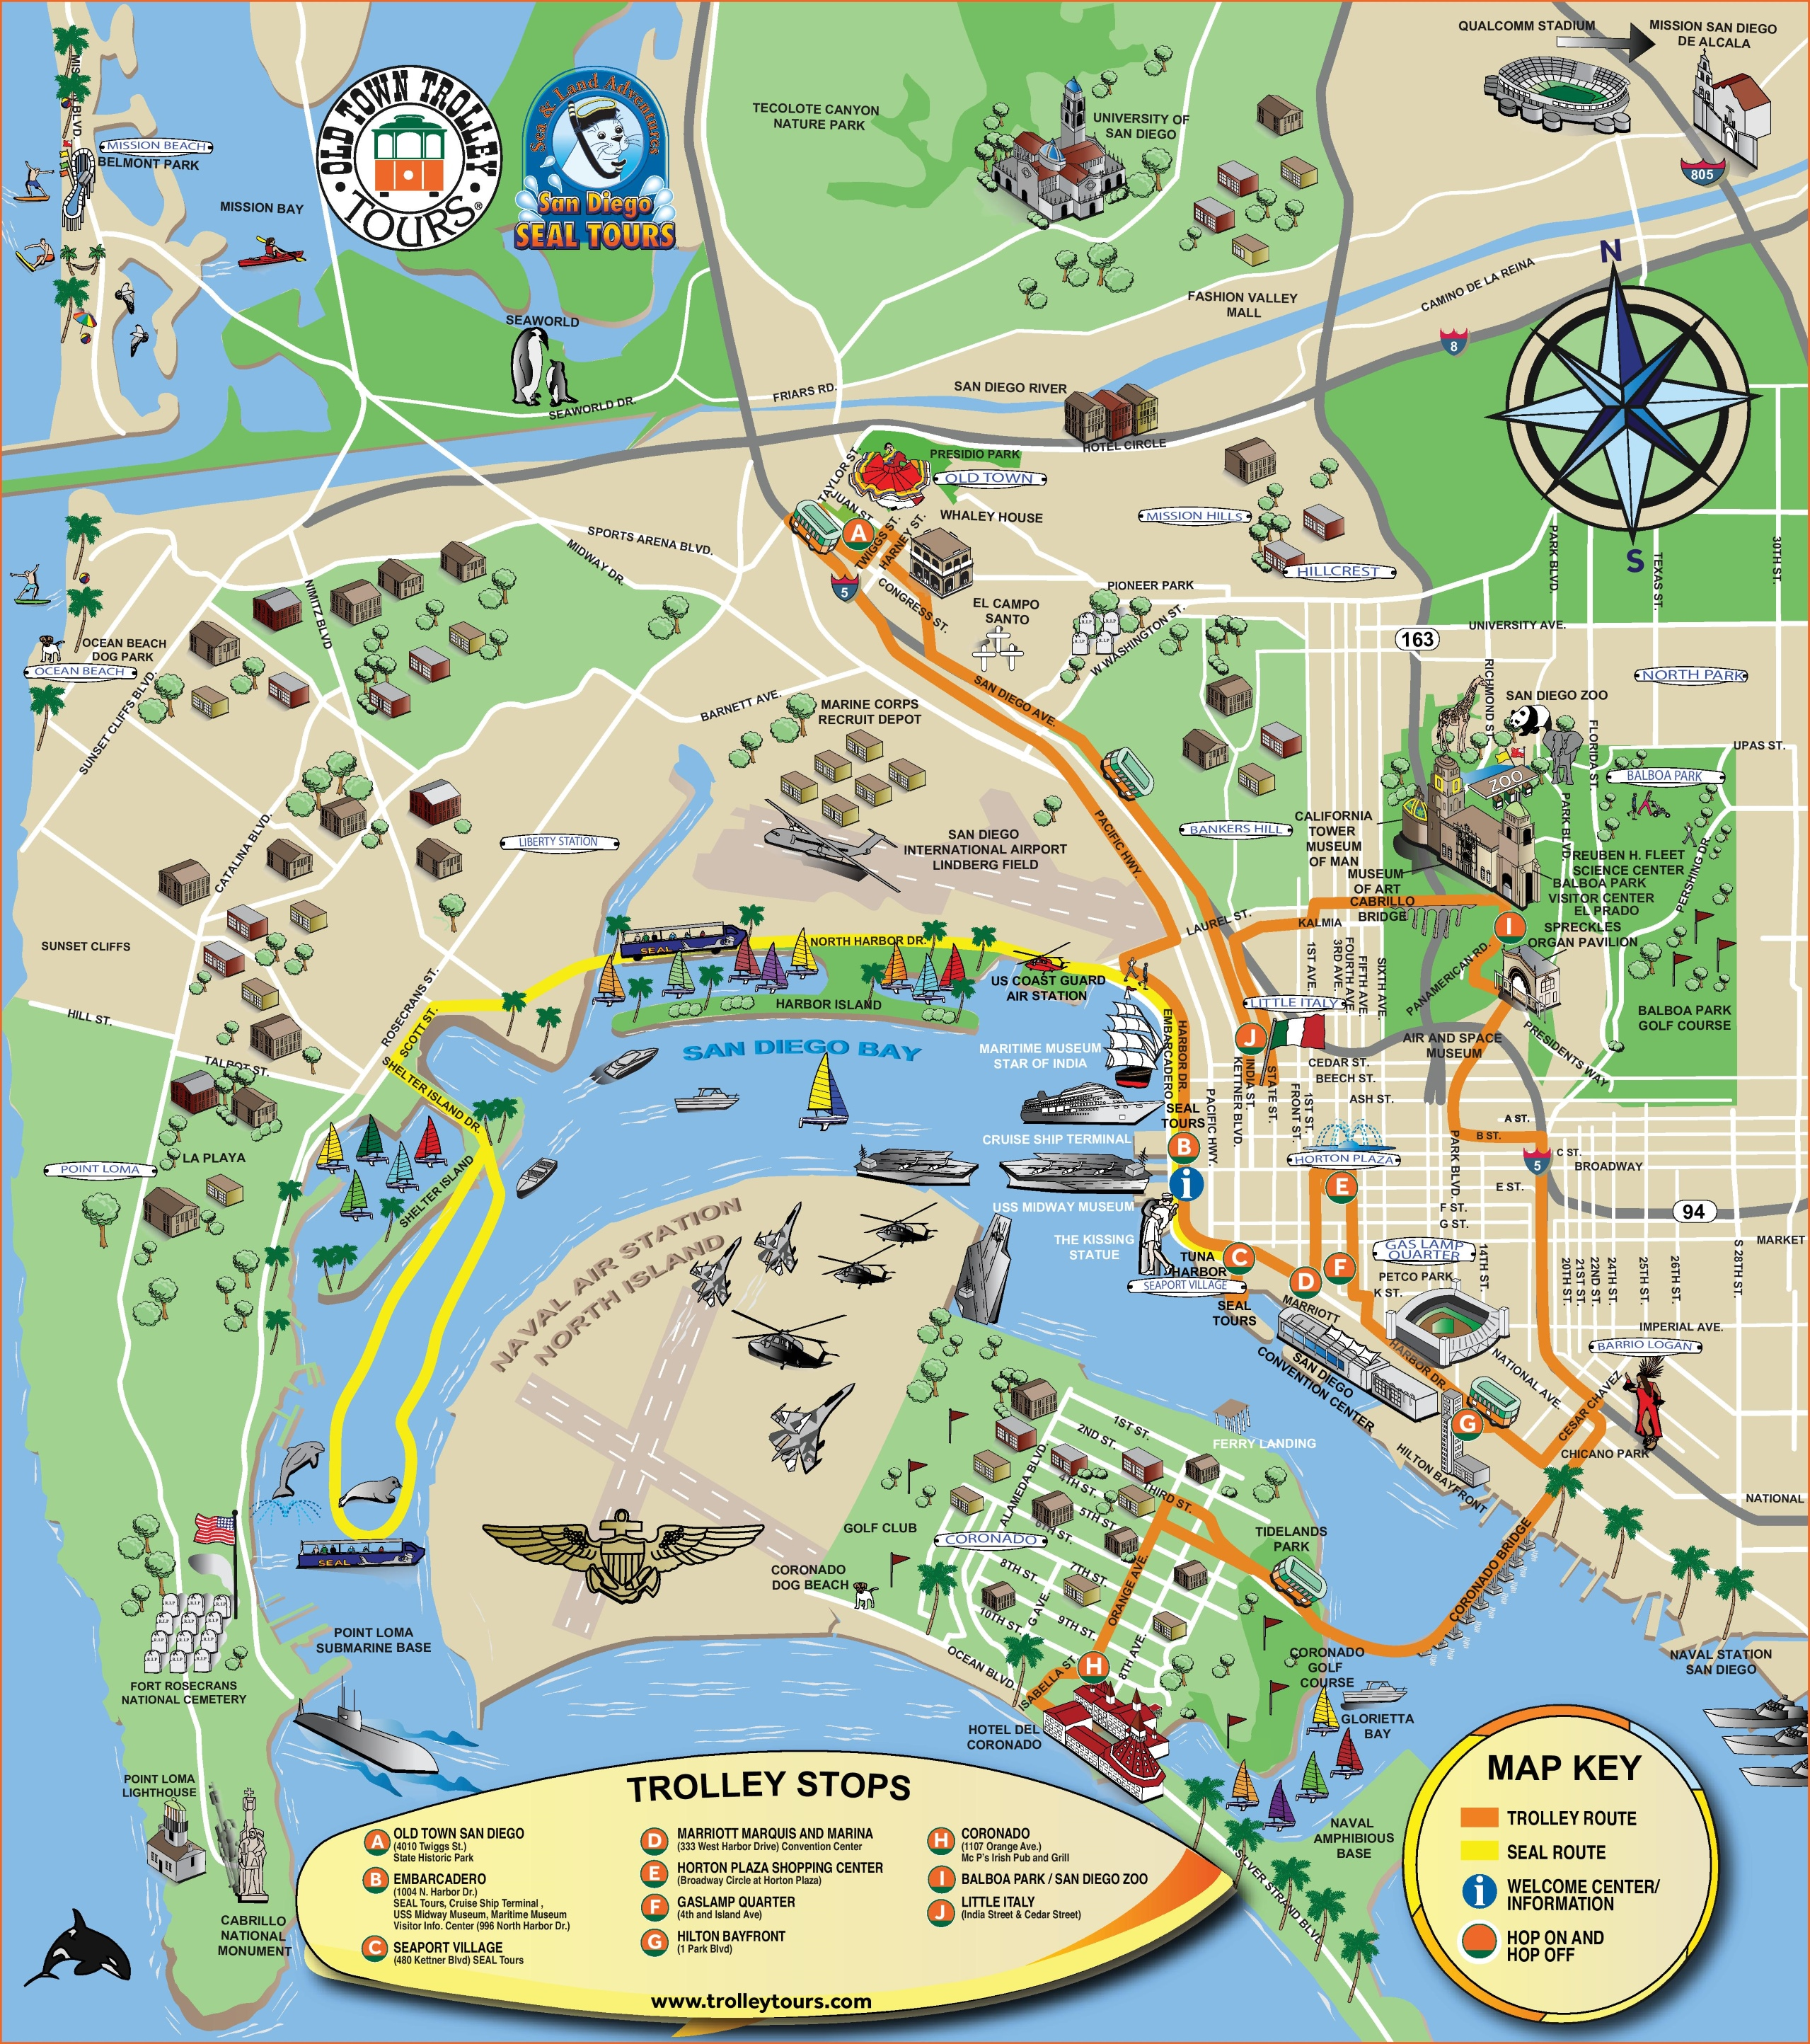 San Diego tourist attractions map – Alabama Tourist Attractions Map